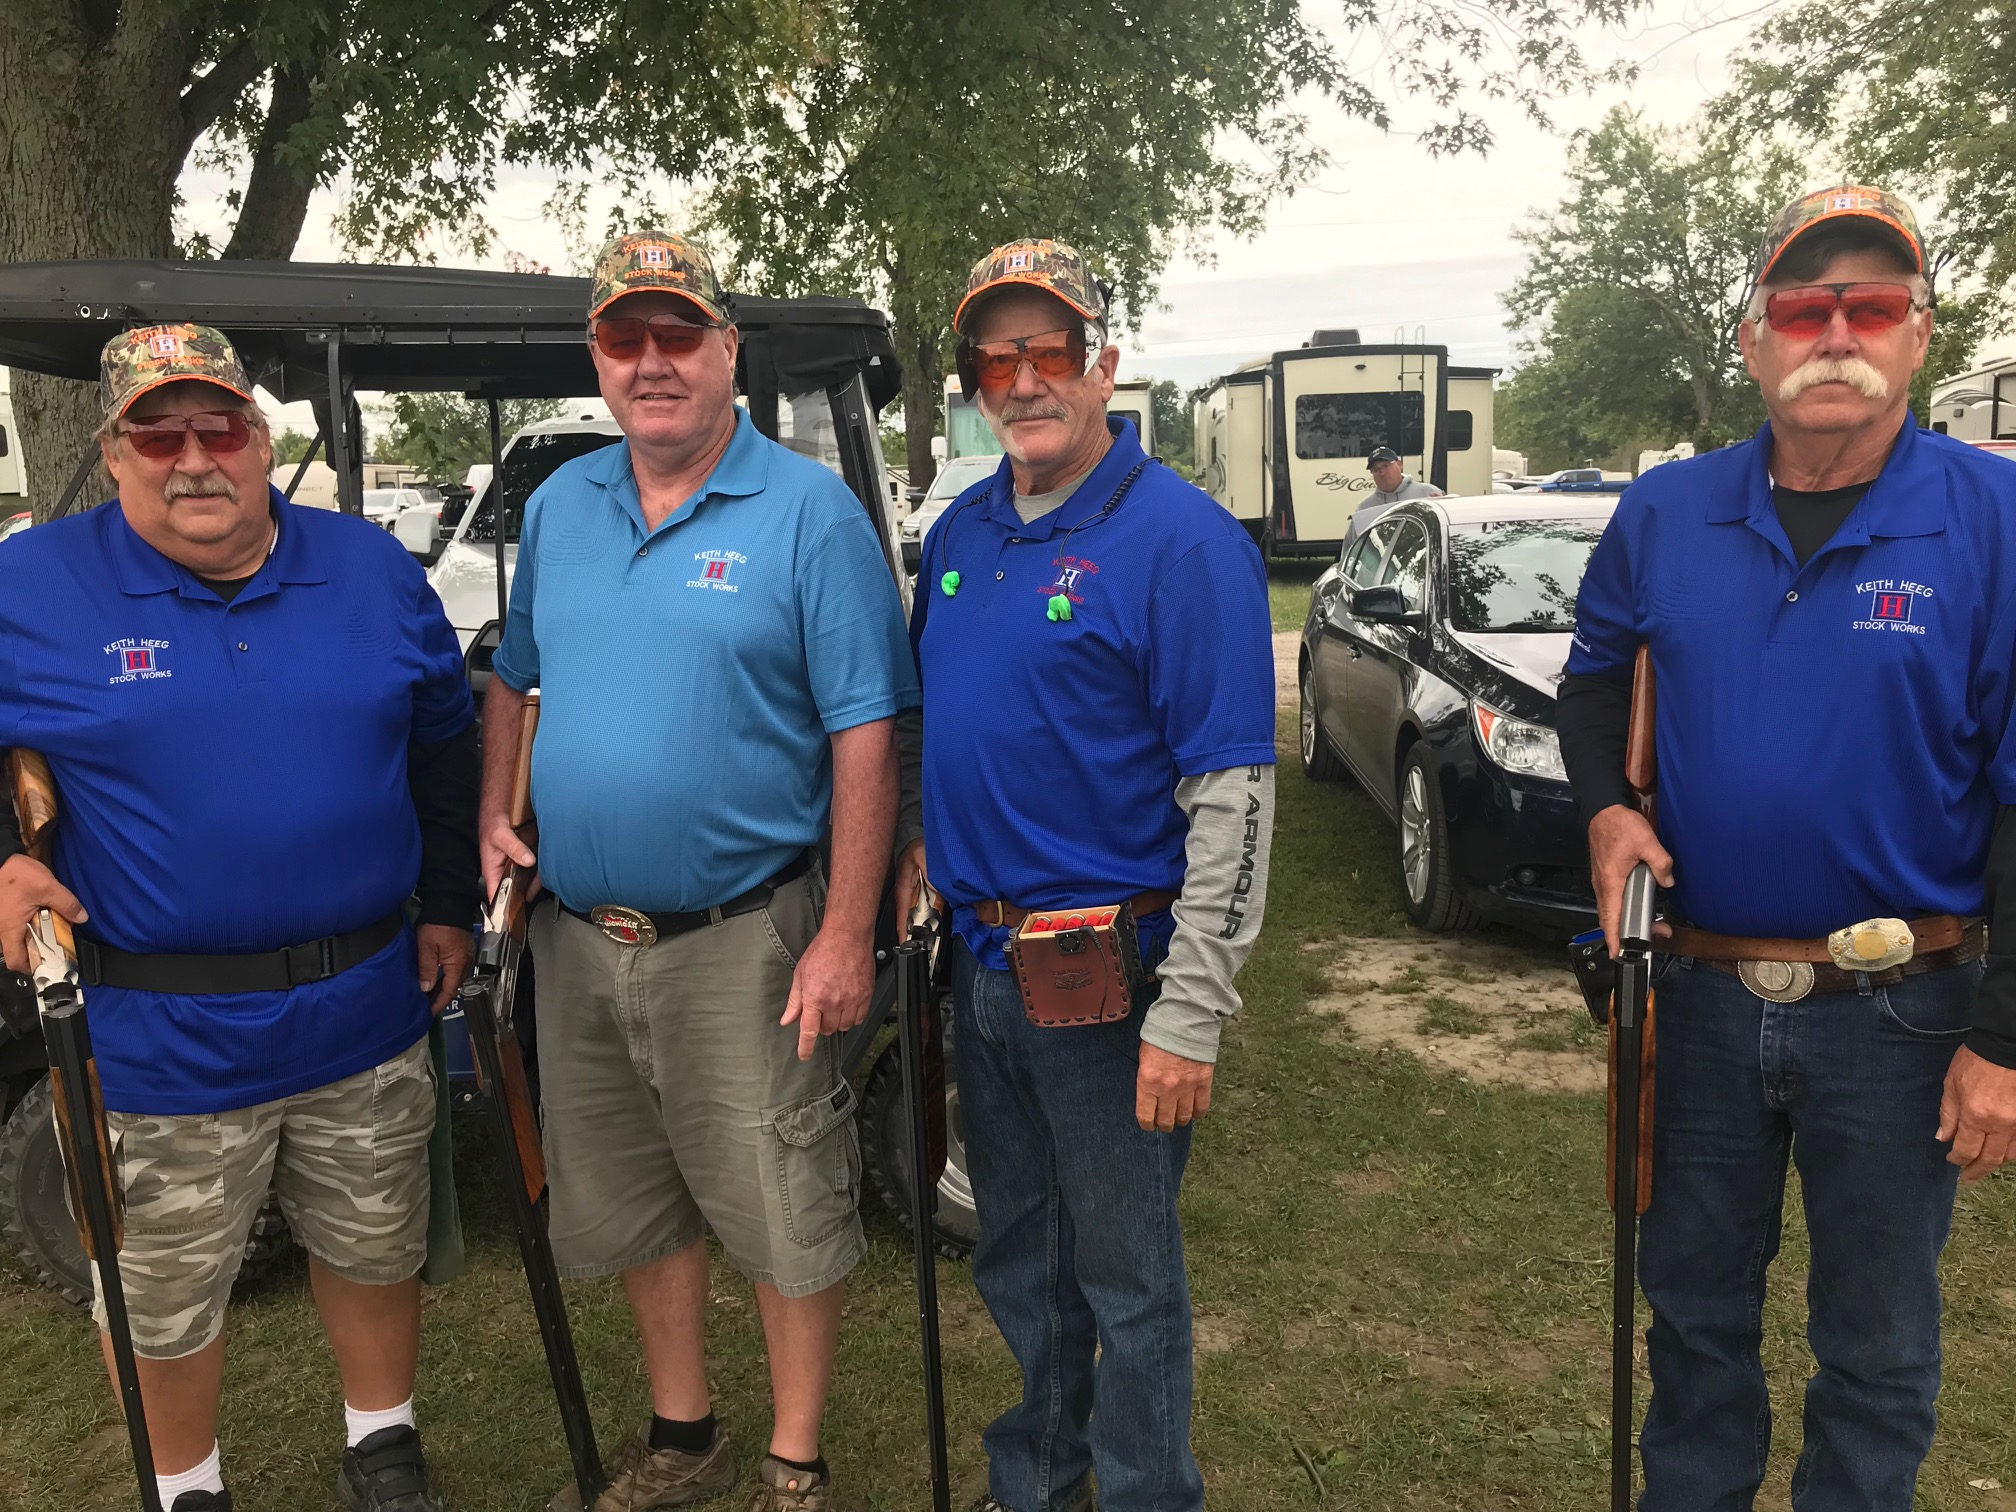 The Keith Heeg Stock Works team: multi-time Michigan Fall and Spring Team champions, at the 2019 Michigan Fall Team Shoot. Members include Dan Cook, Mark Jonckheere, Bill Hagerty and Larry Telfer. The spot occupied by Heeg was left open after his passing in early September. The end of an era.